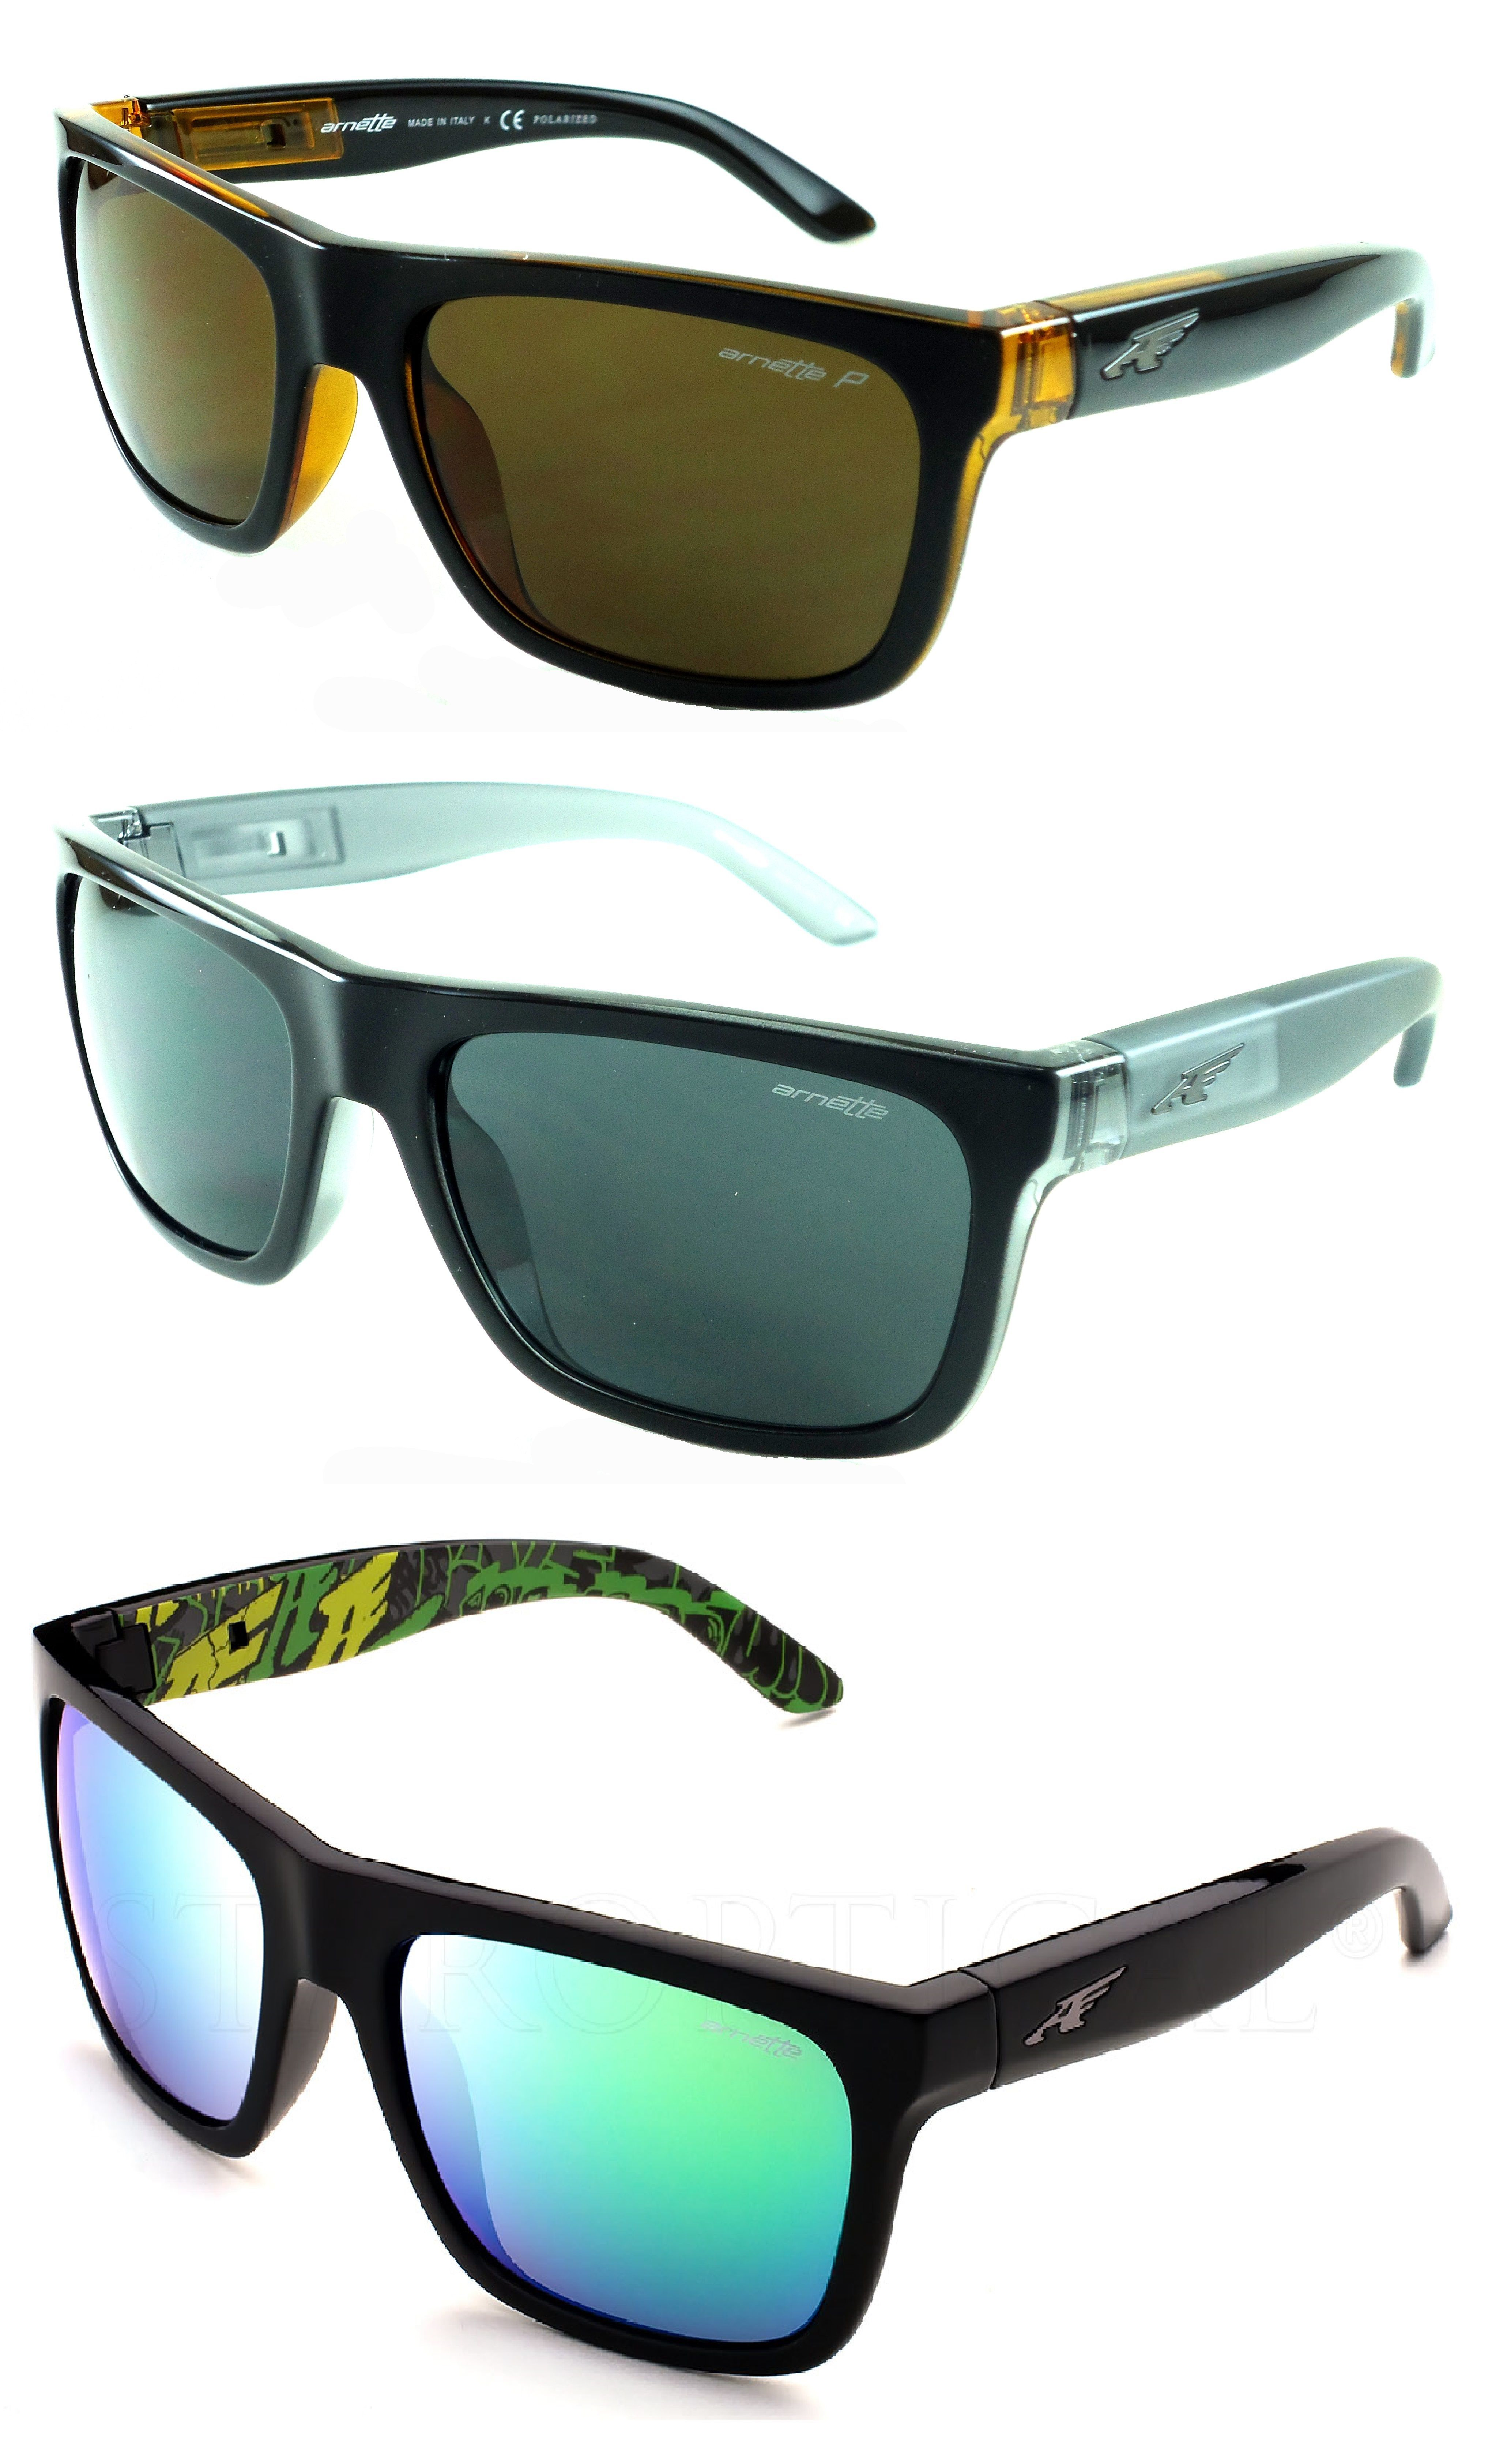 2cda4503b3 Arnette fuses outstanding design with bold attitude for people who live an  active life. Check